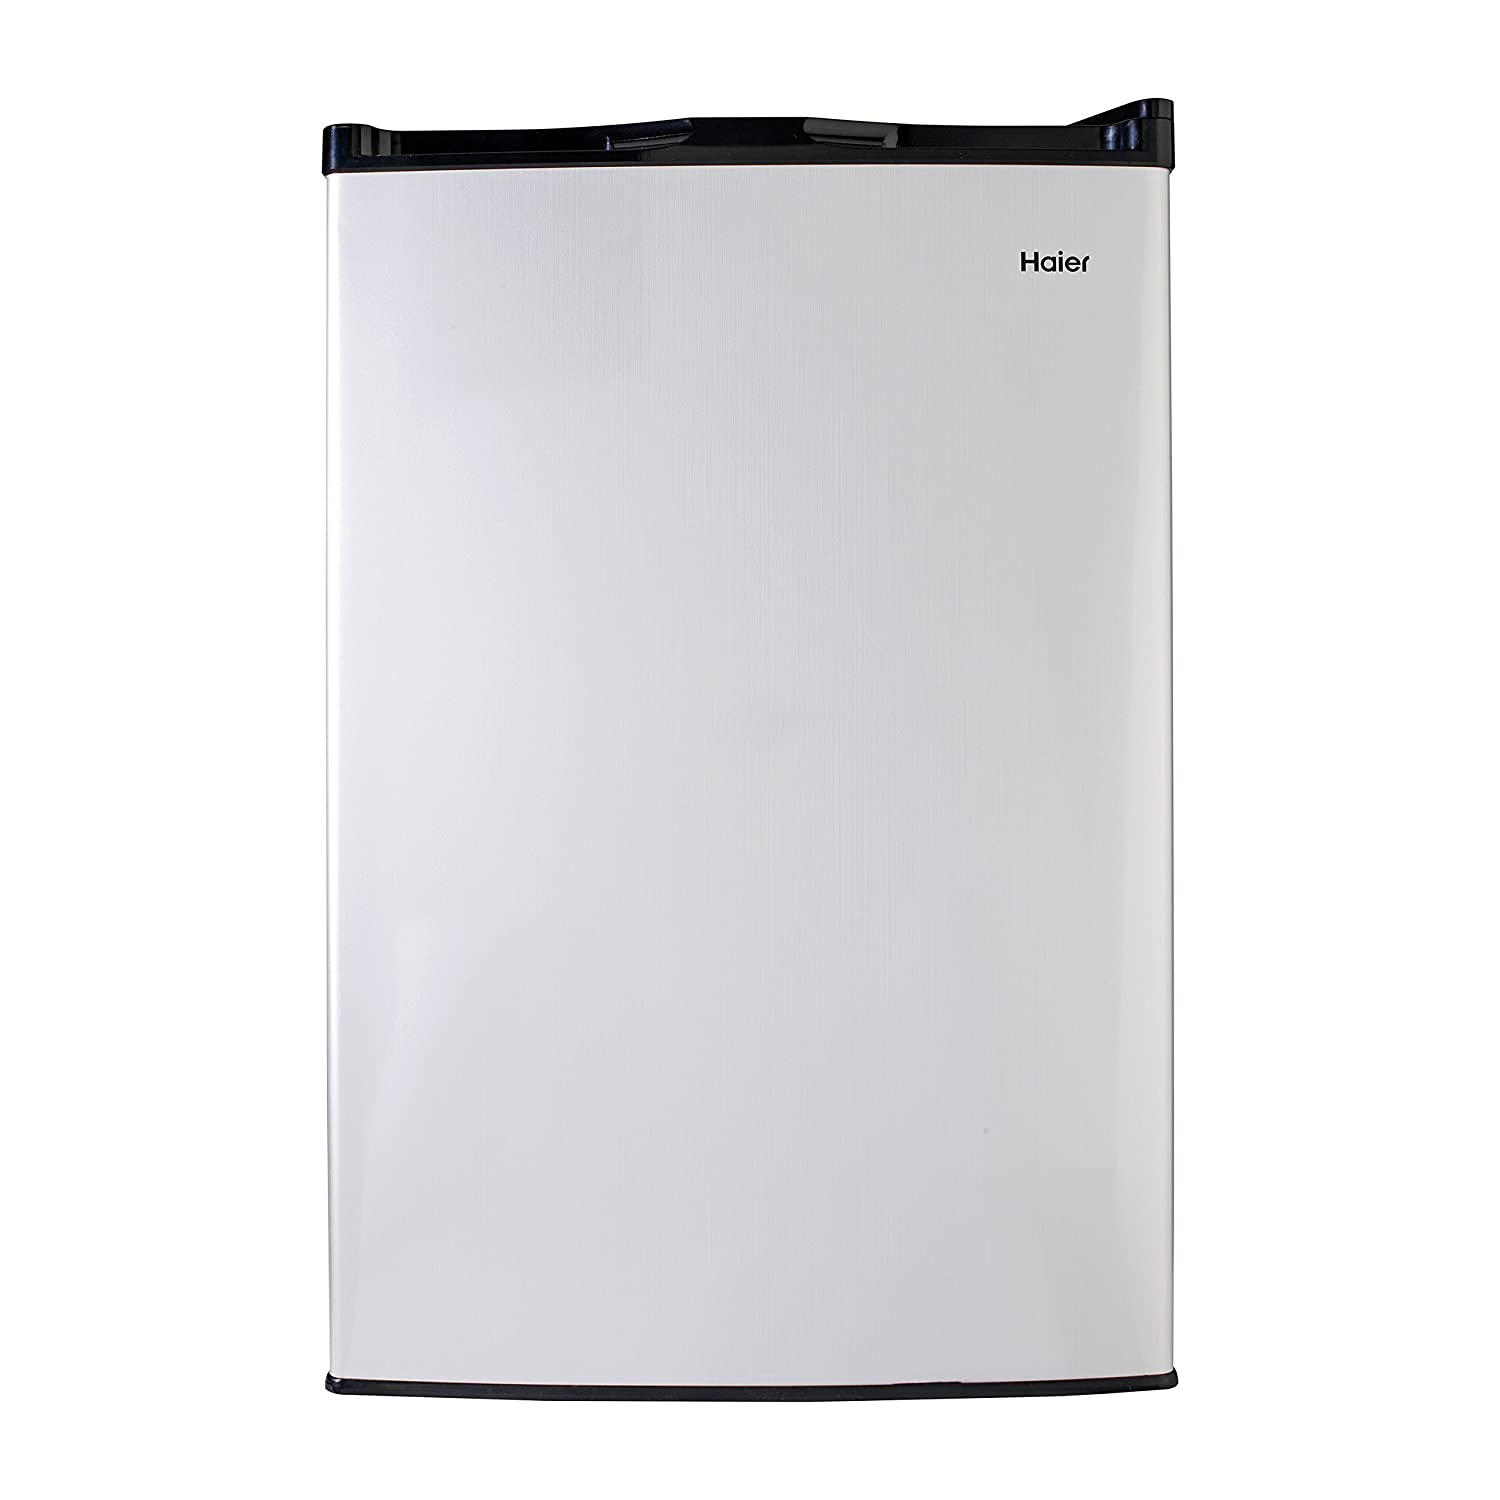 GE HC46SF10SV Compact Refrigerator, 4.5 Cu Ft, Stainless Steel